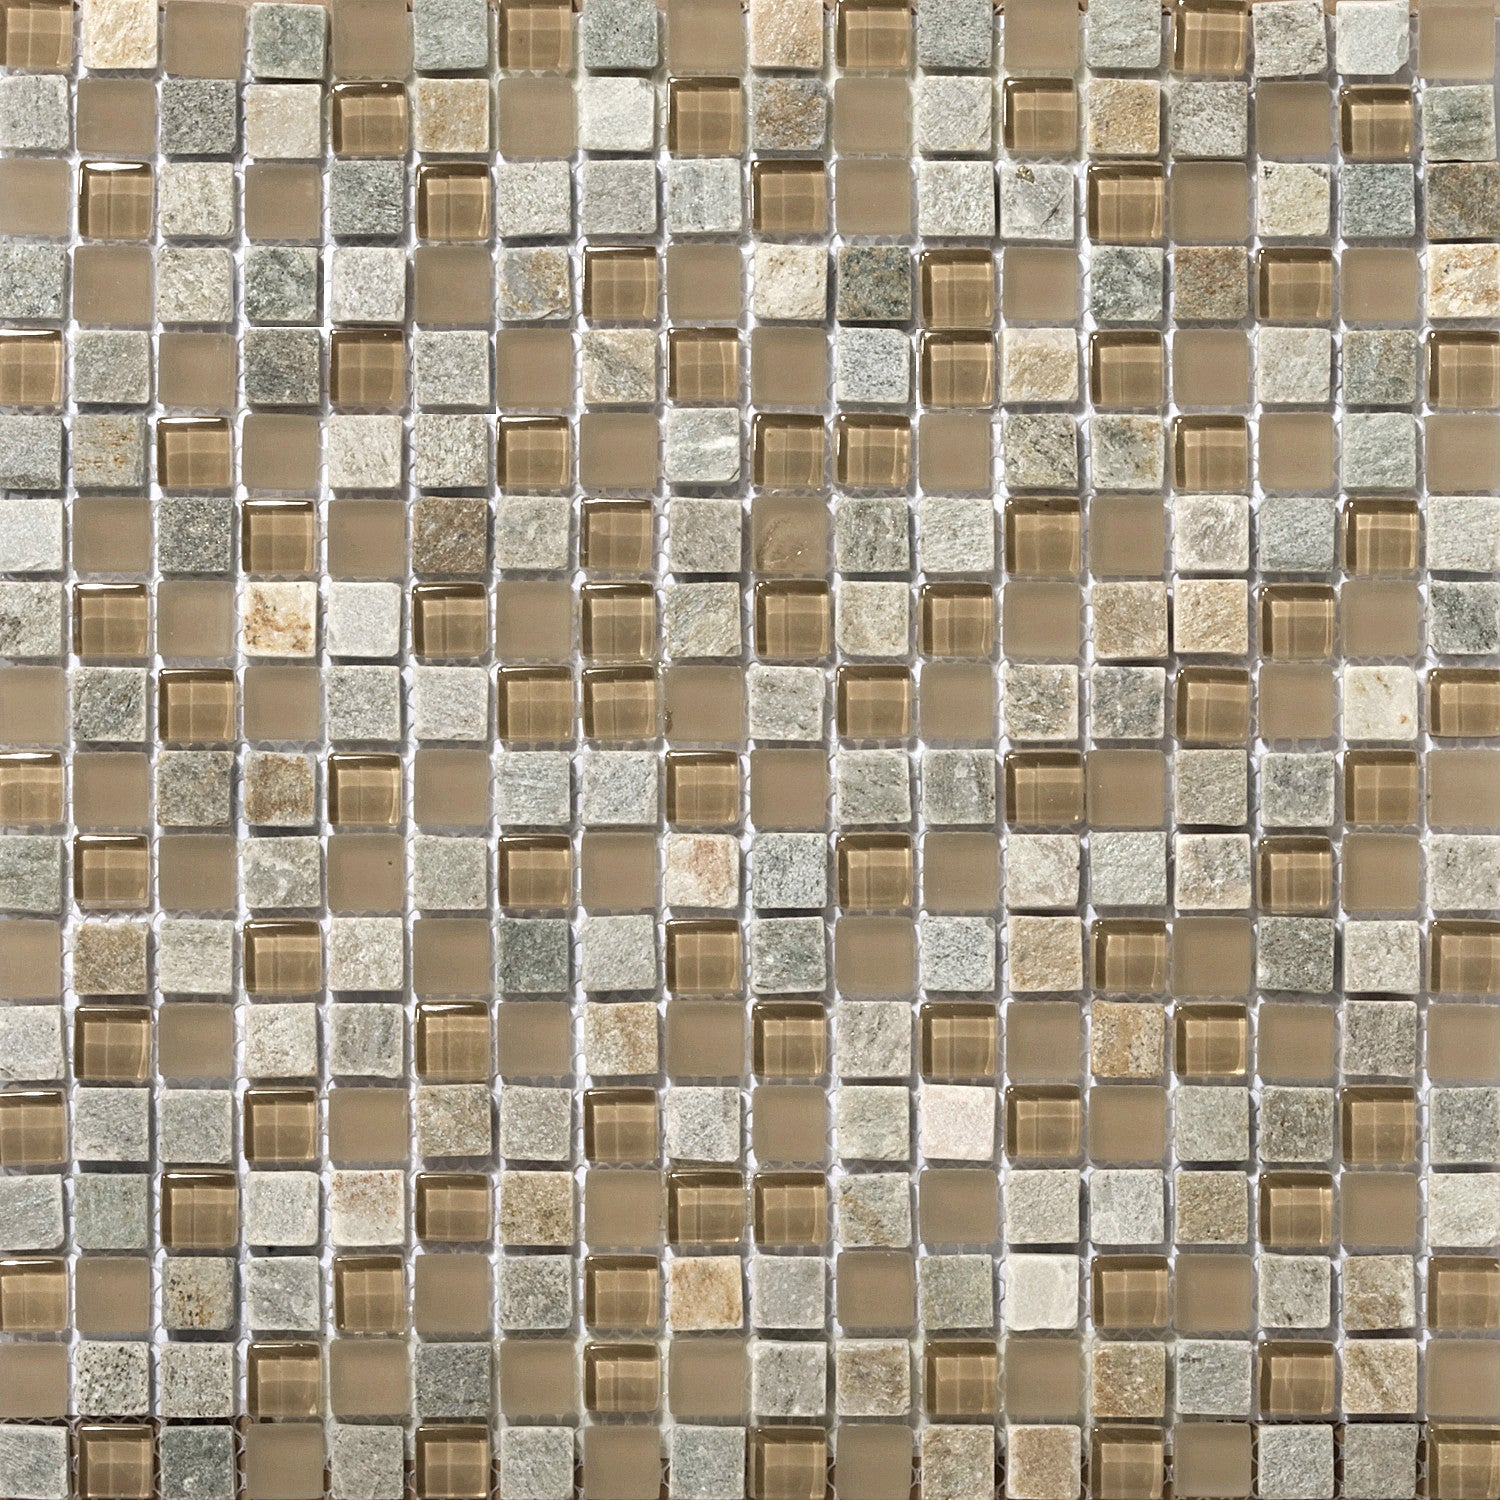 Lucente glass stone mosaics glass wall tile mosaic tile by lucente glass stone mosaics glass wall tile mosaic tile by emser tile dailygadgetfo Image collections